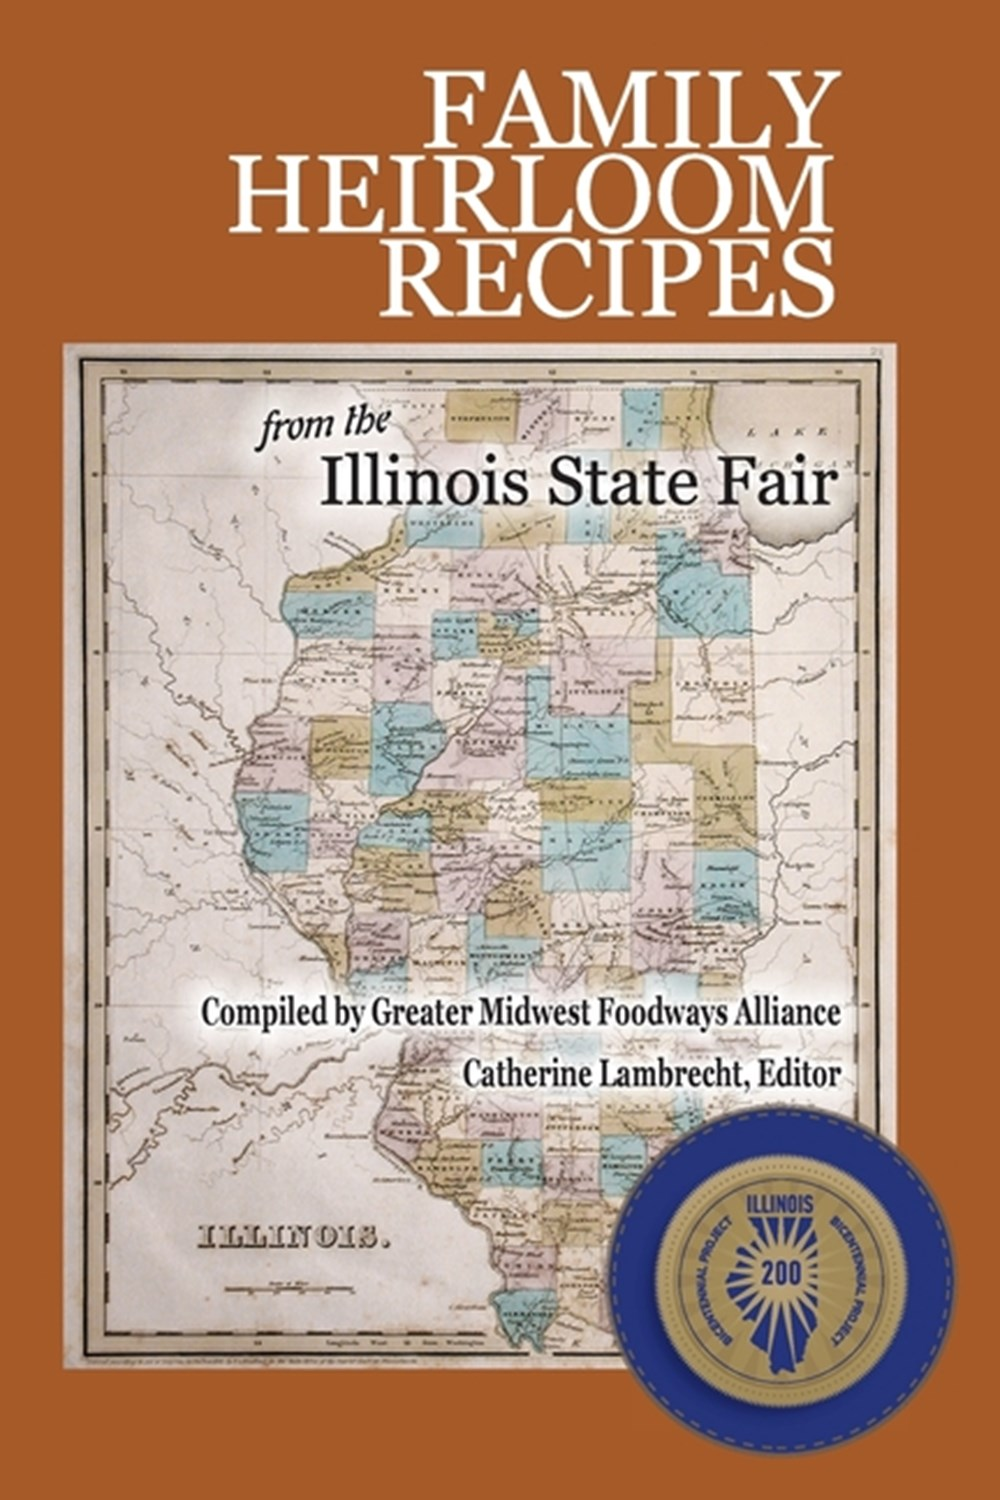 Family Heirloom Recipes from the Illinois State Fair